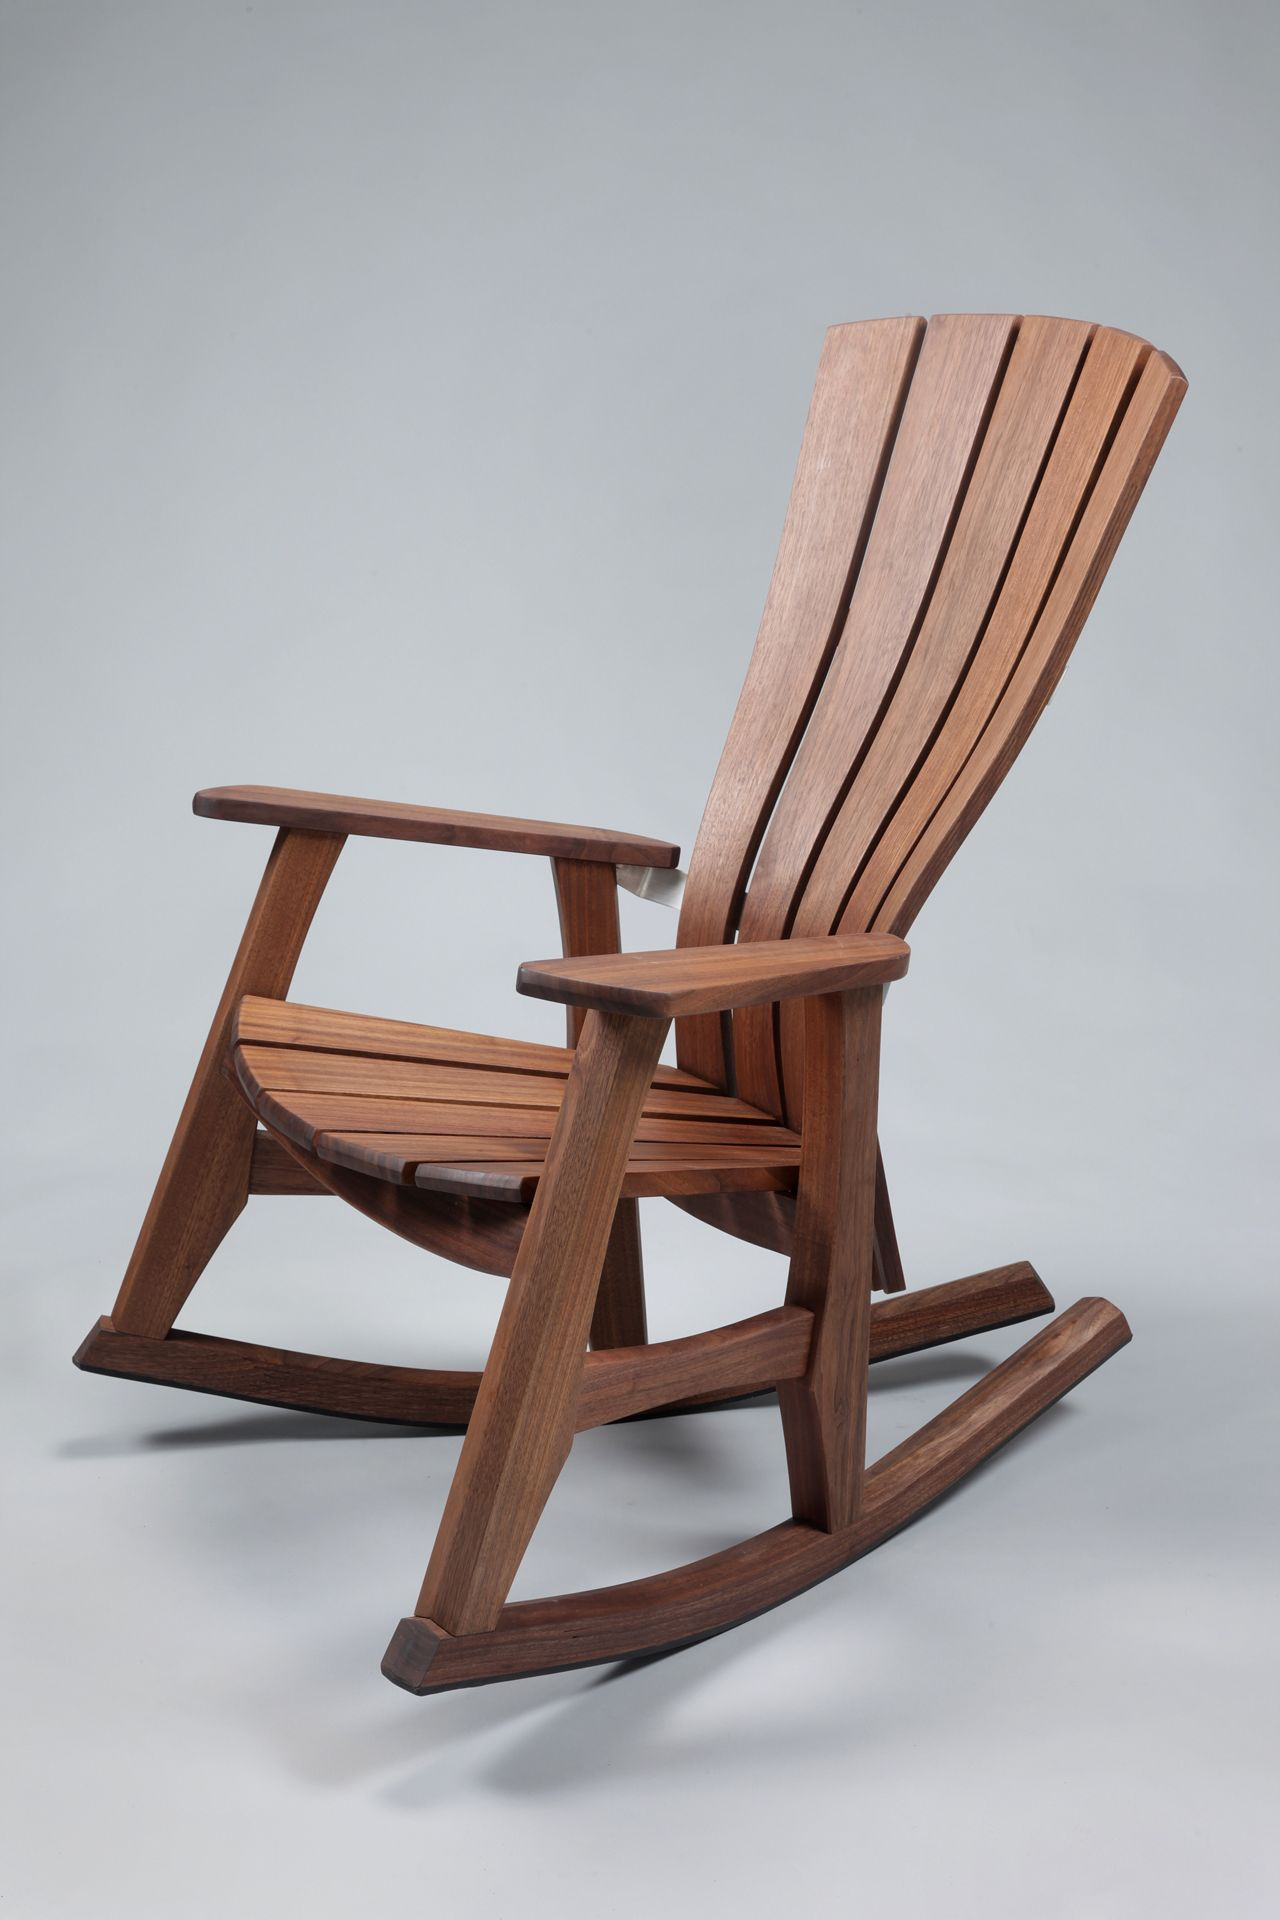 Sunniva Outdoor Garden Rocking Chair Wooden rocking